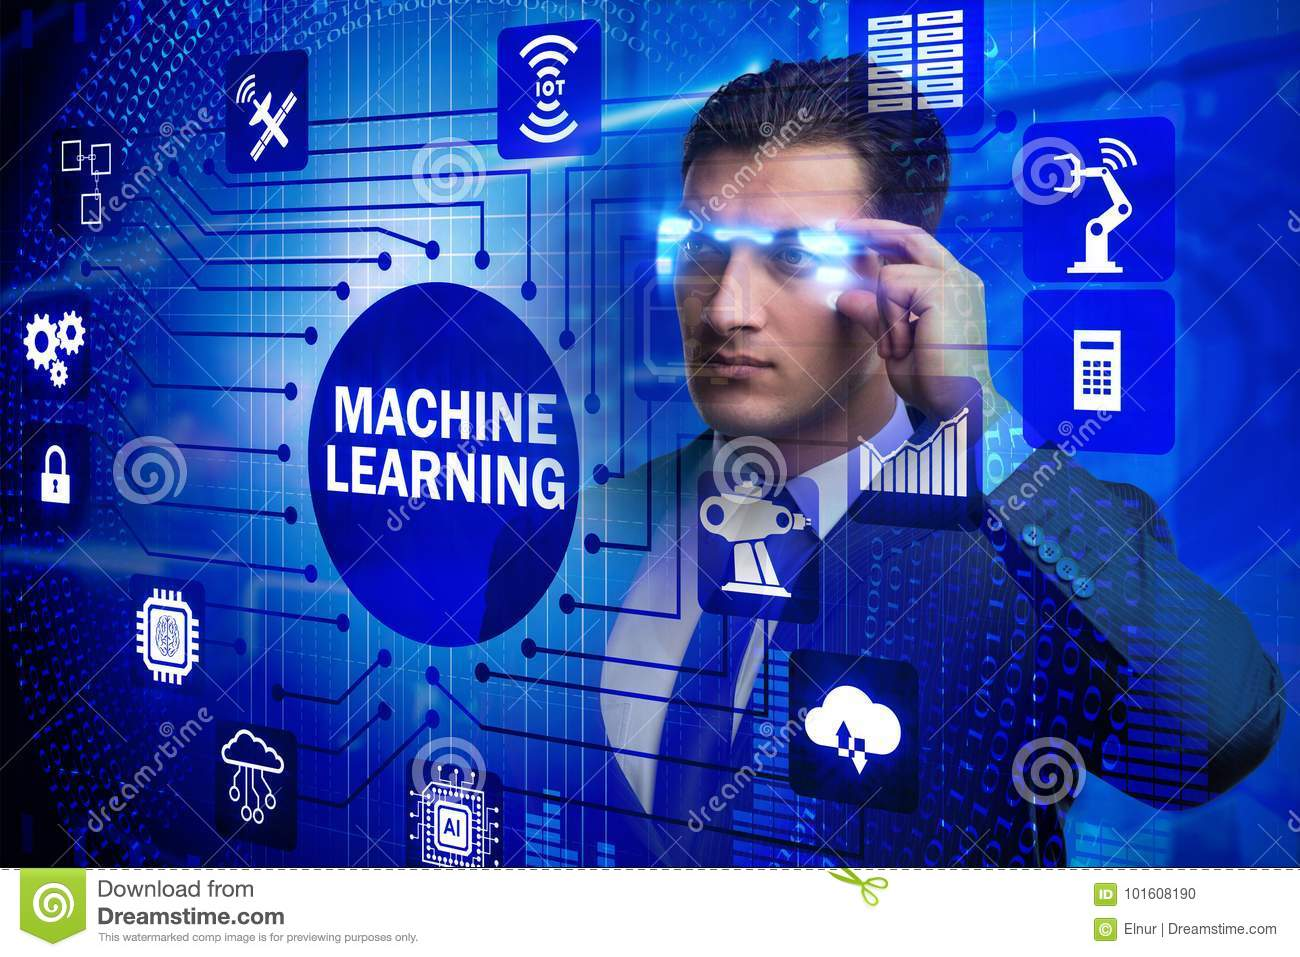 The businessman with futuristic glasses in machine learning concept